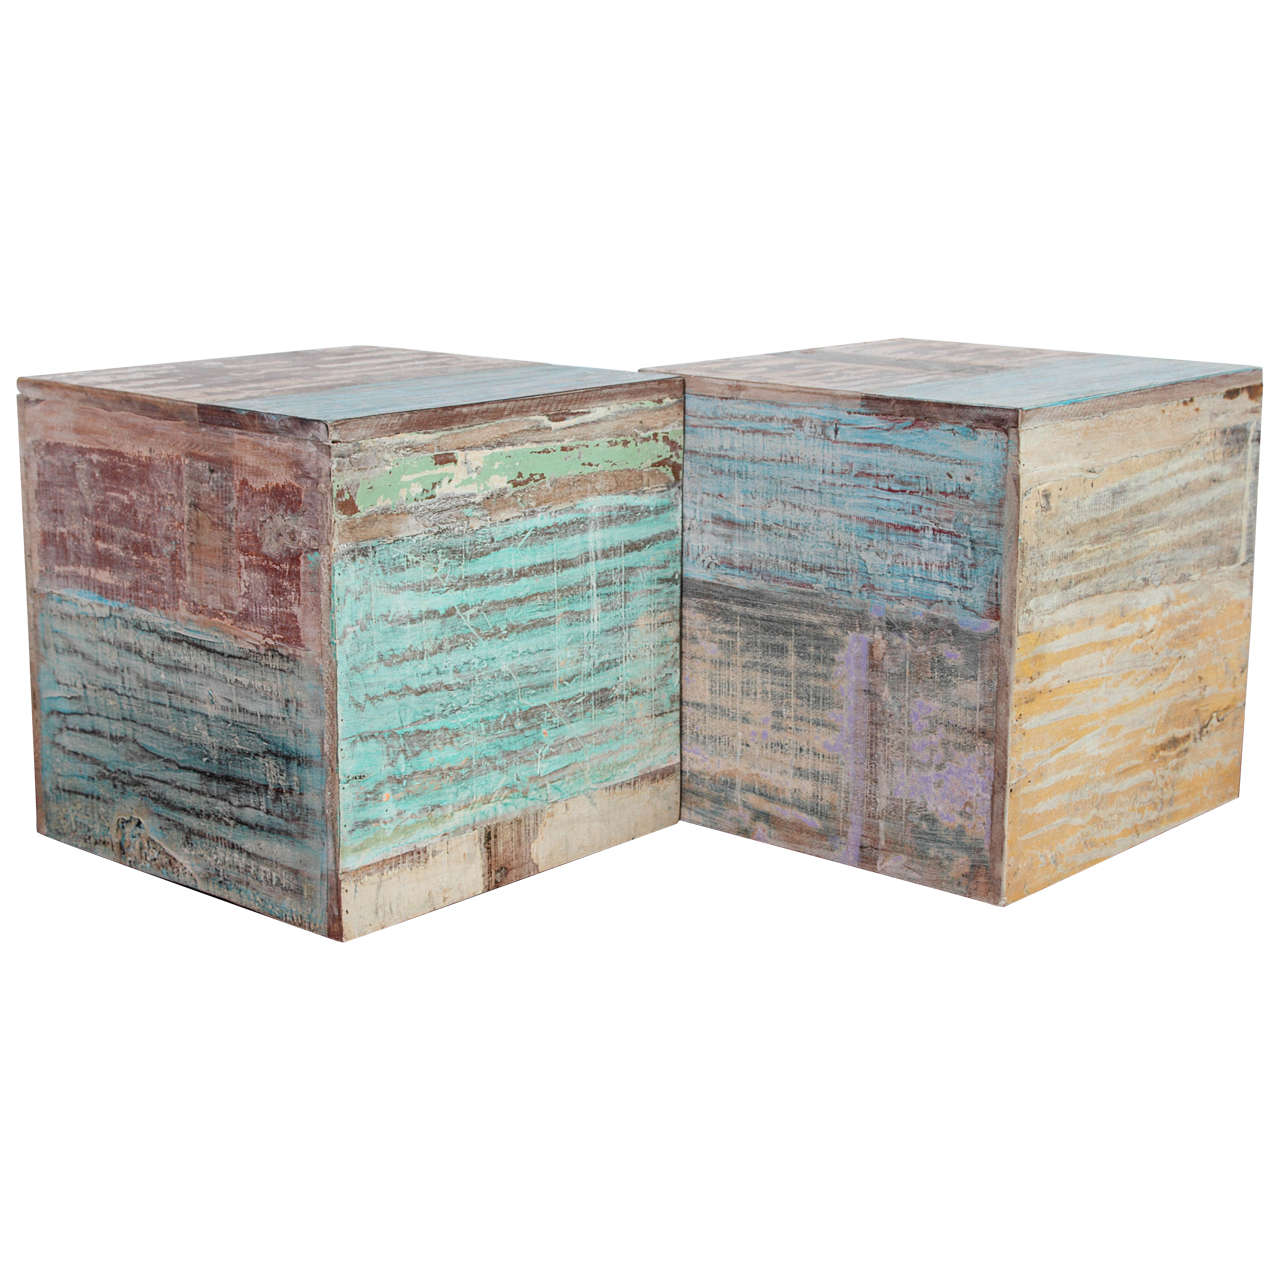 Wood Block End Tables Colorful Wood Block End Tables At 1stdibs